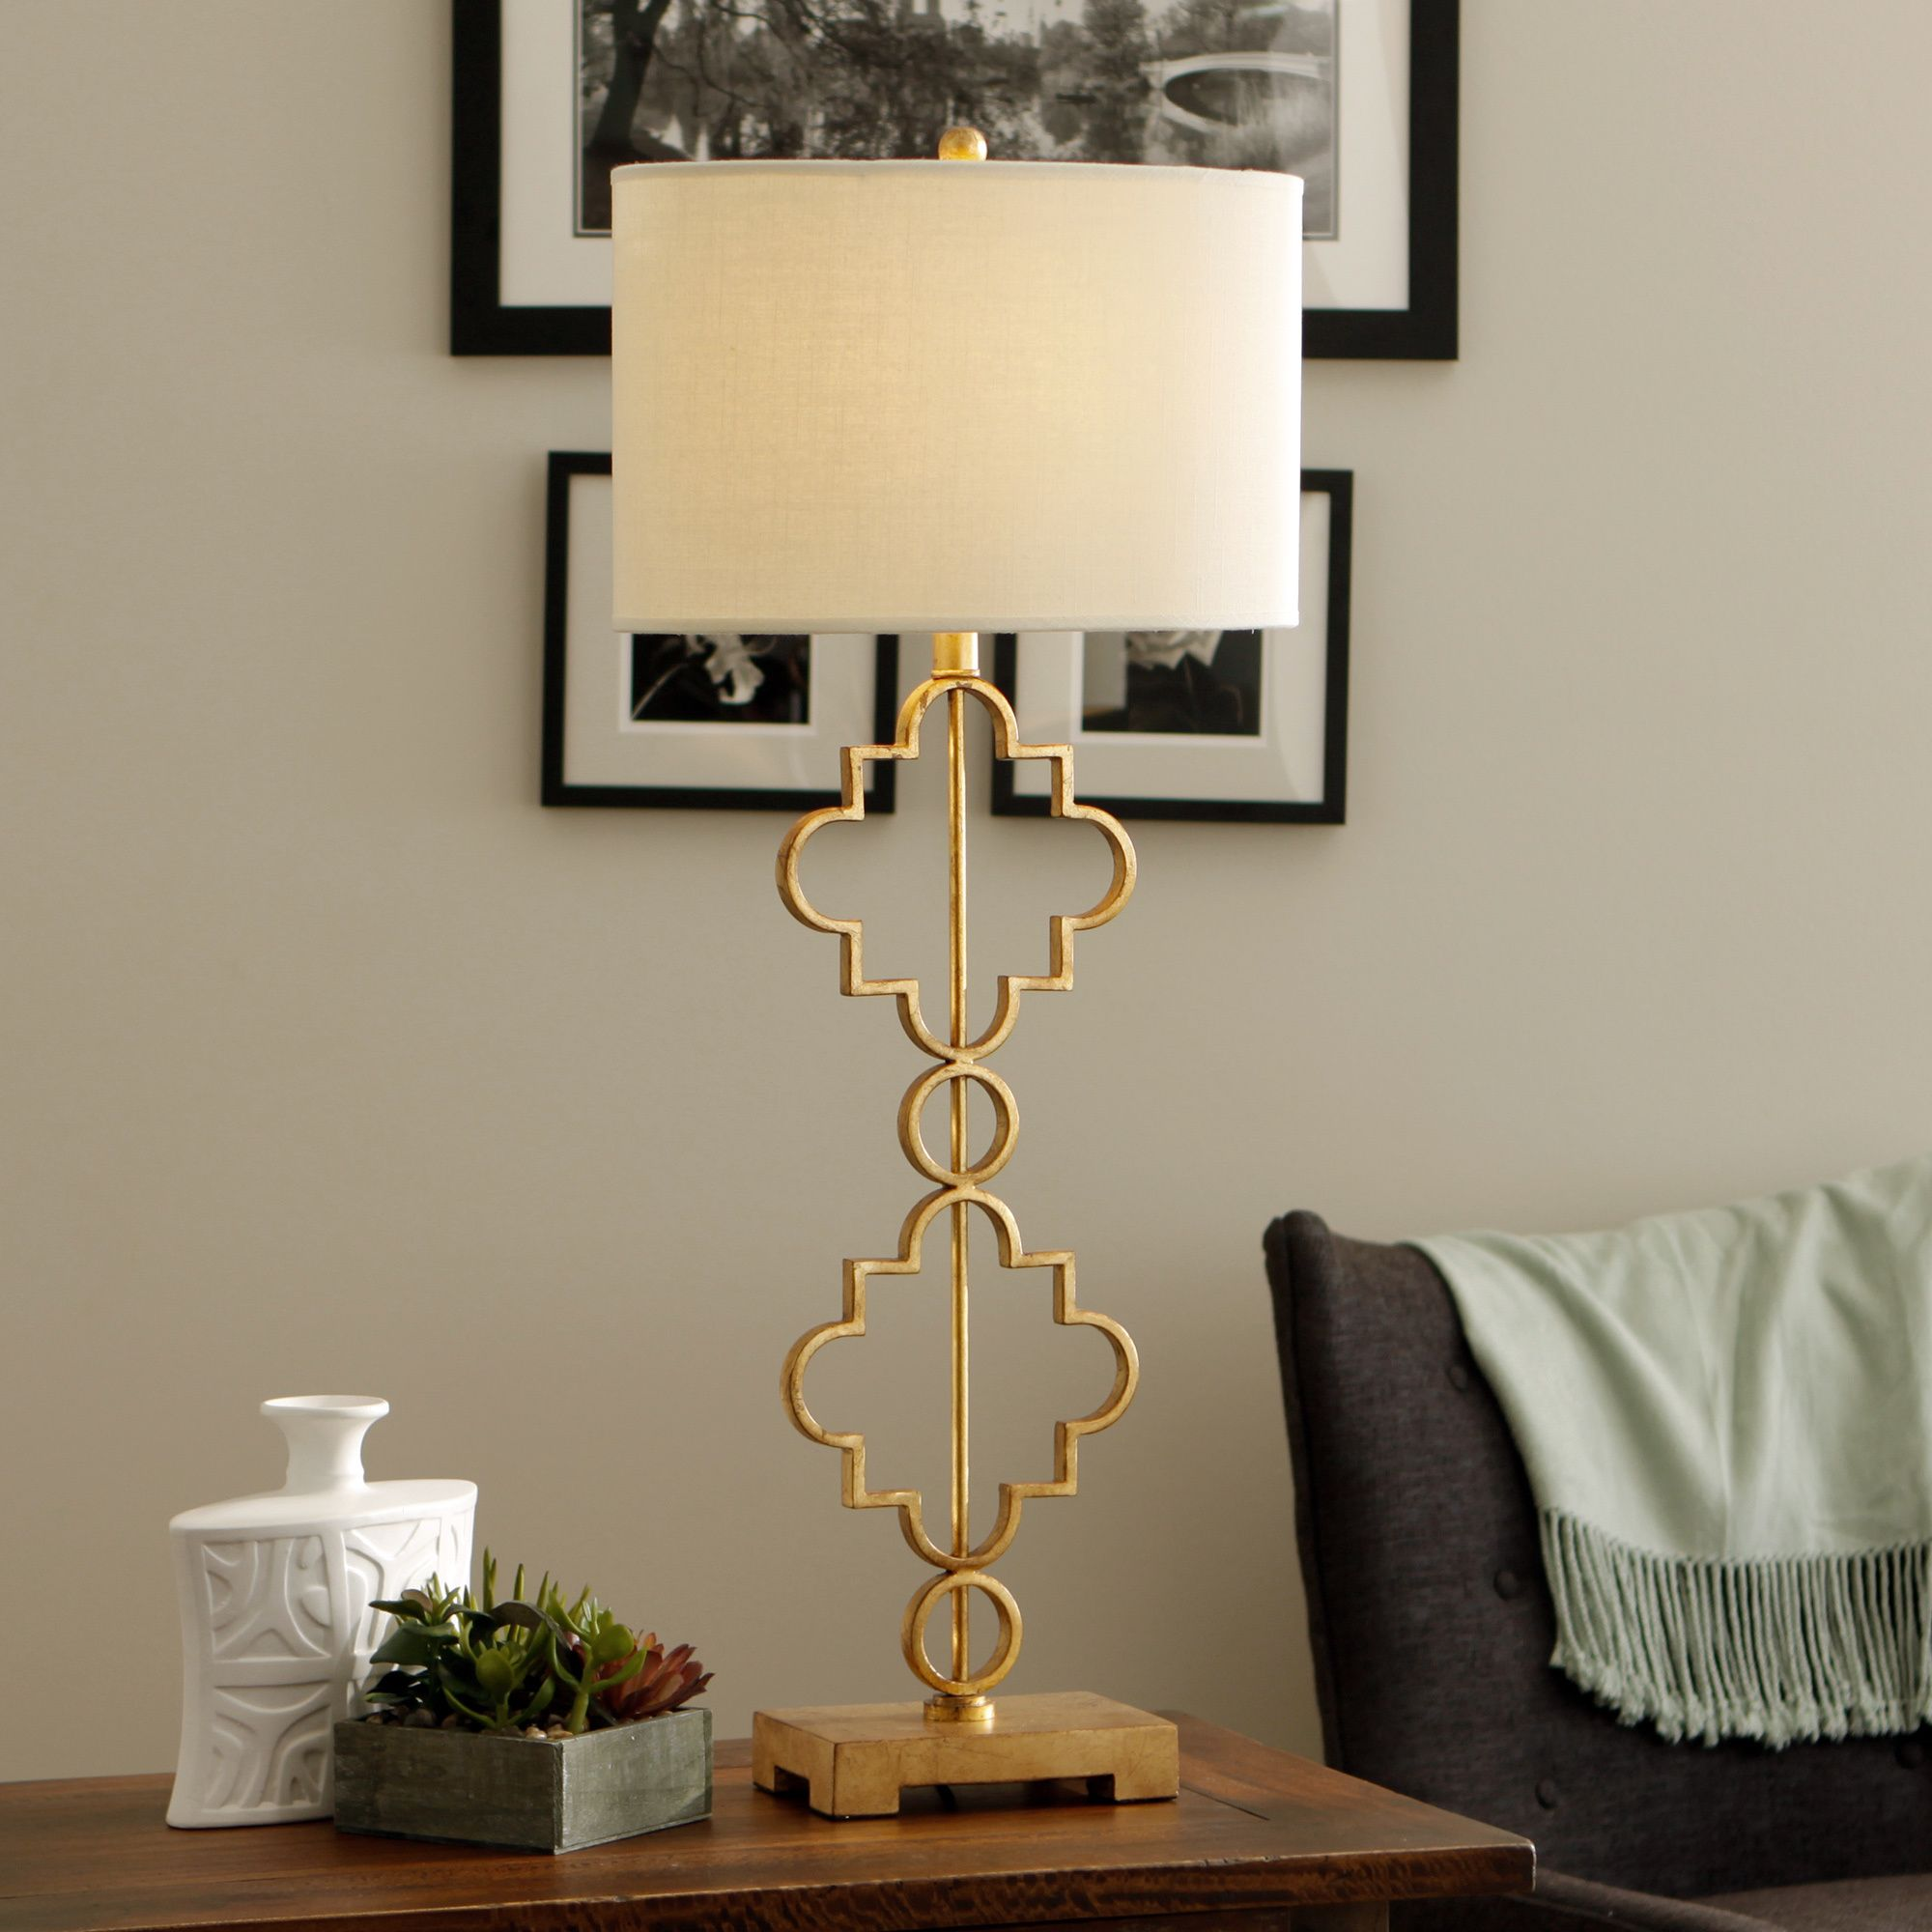 touch sophisticated charm any accent table with the lamps contemporary moroccan lamp showcasing stunning antique gold leaf finish small white night multi colored low outdoor